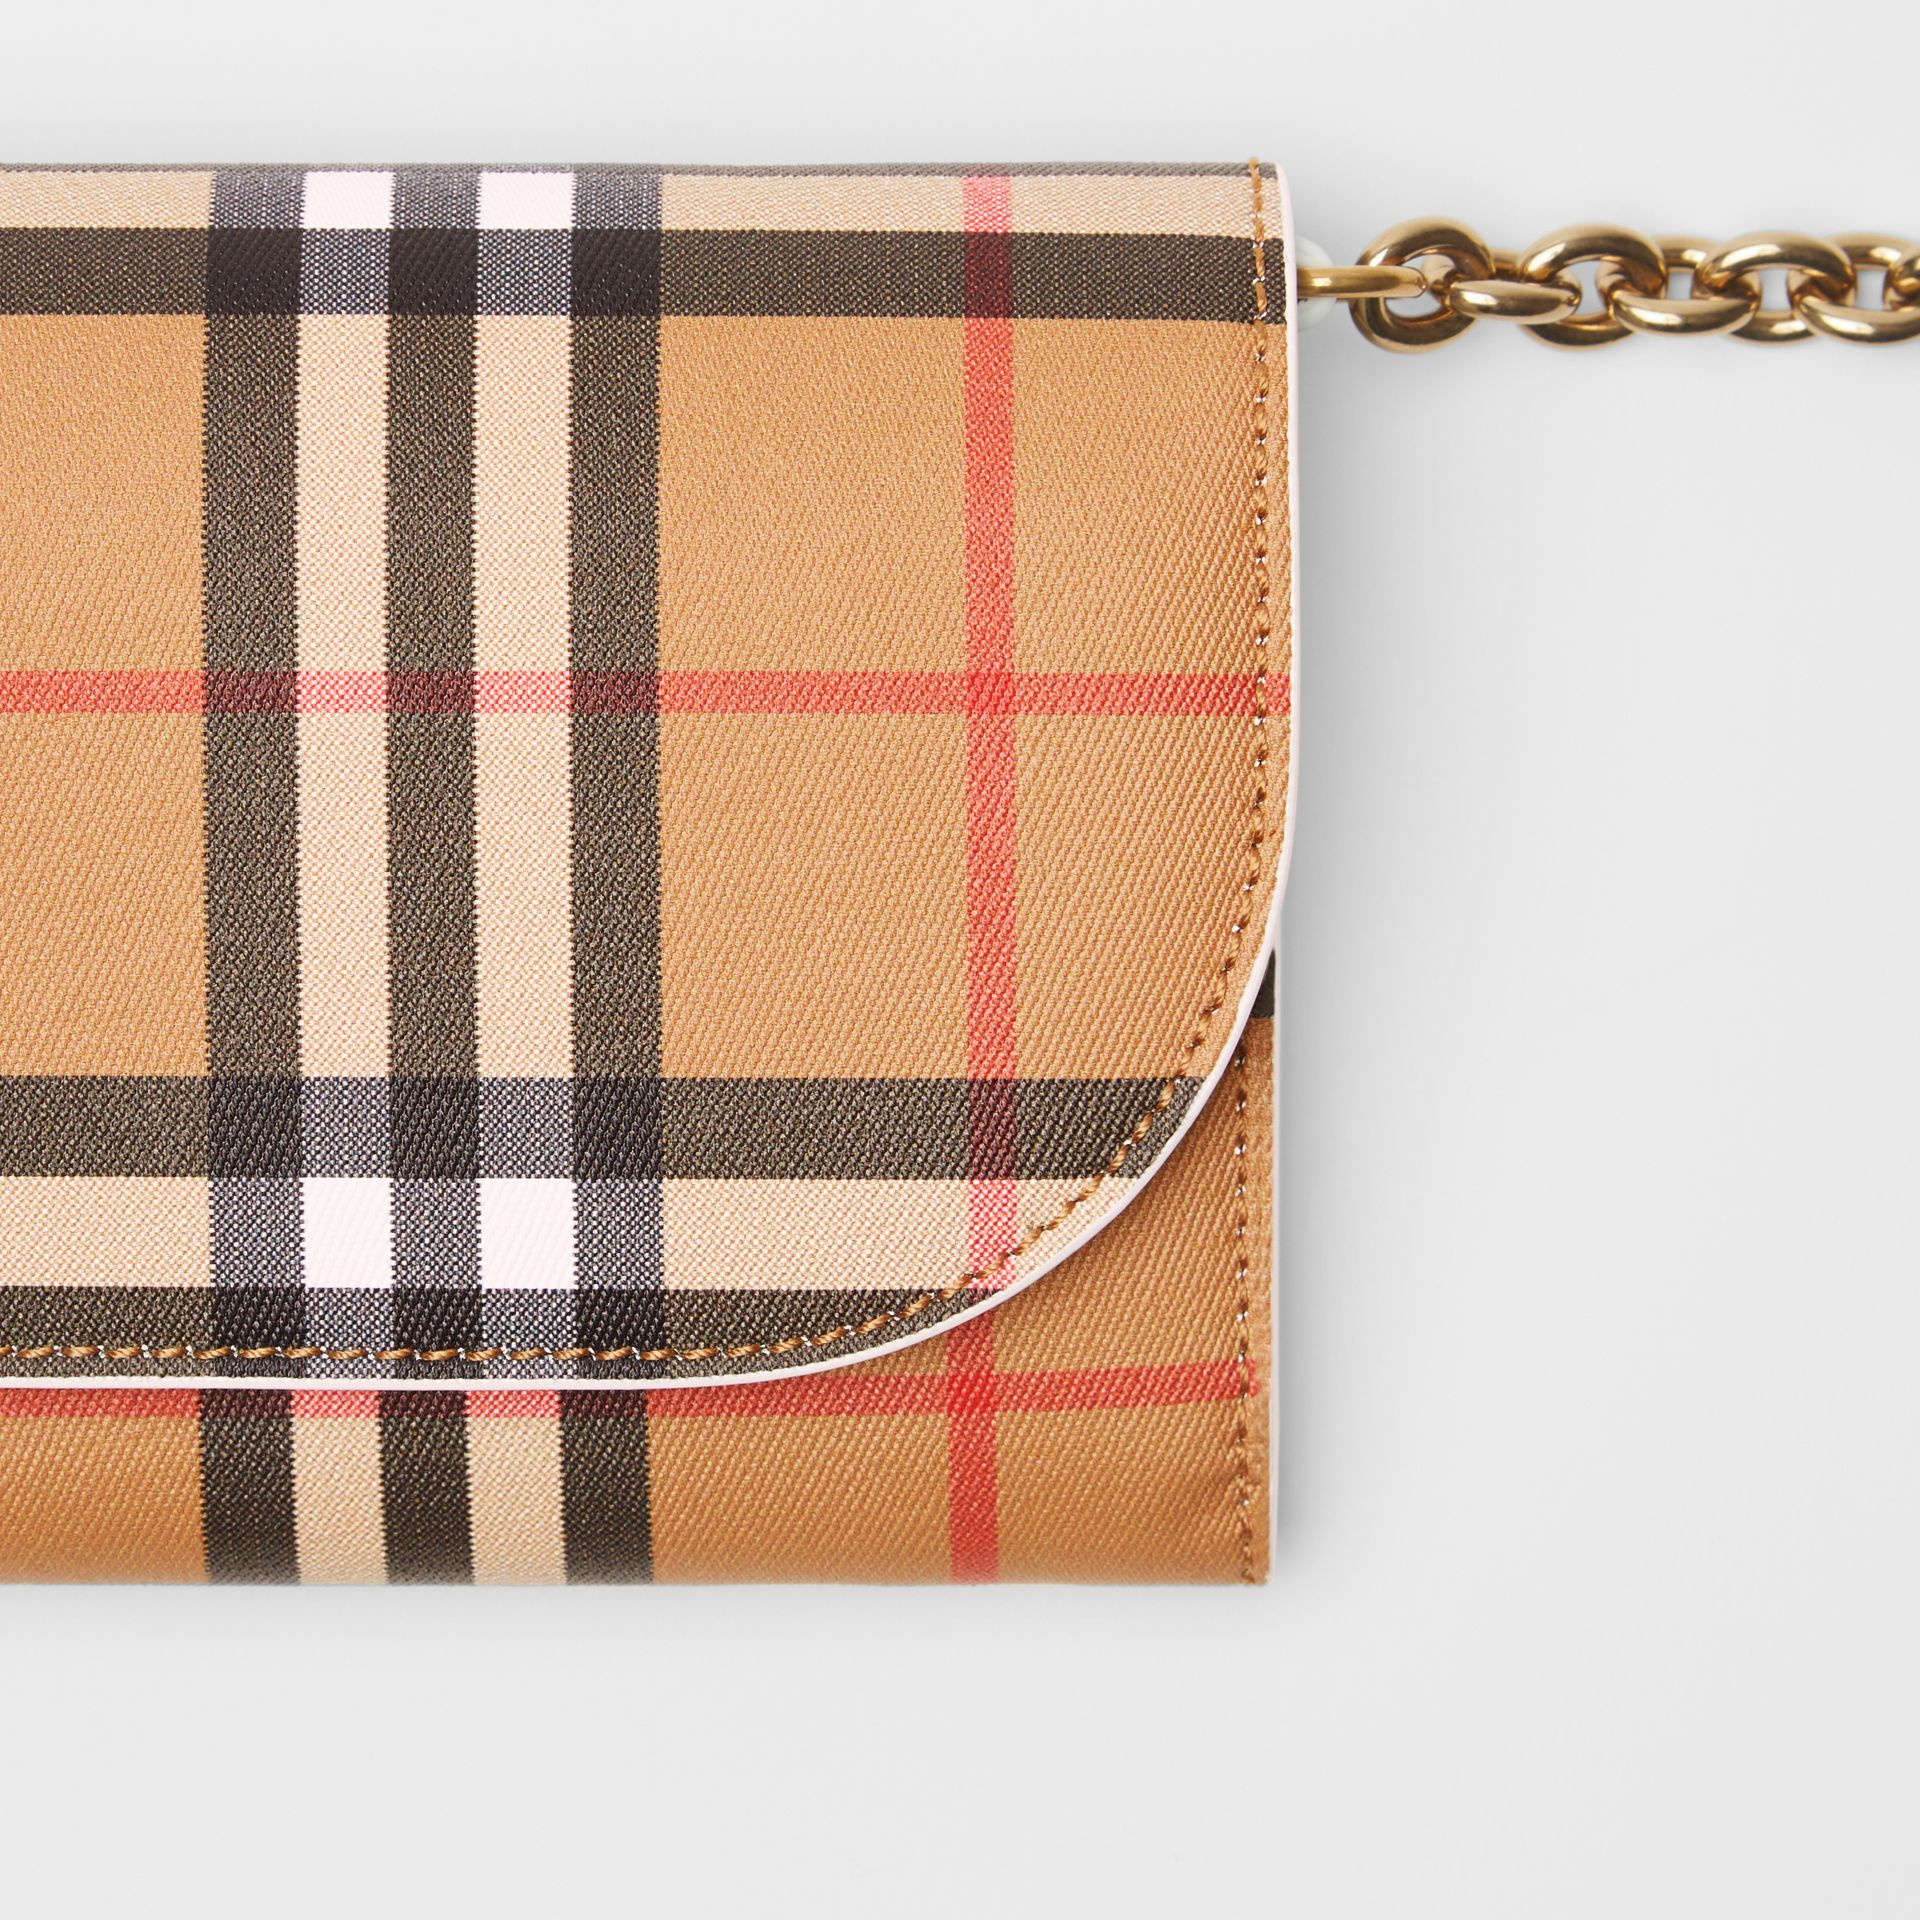 Vintage Check and Leather Wallet with Chain in Chalk White - Women | Burberry Australia - gallery image 1